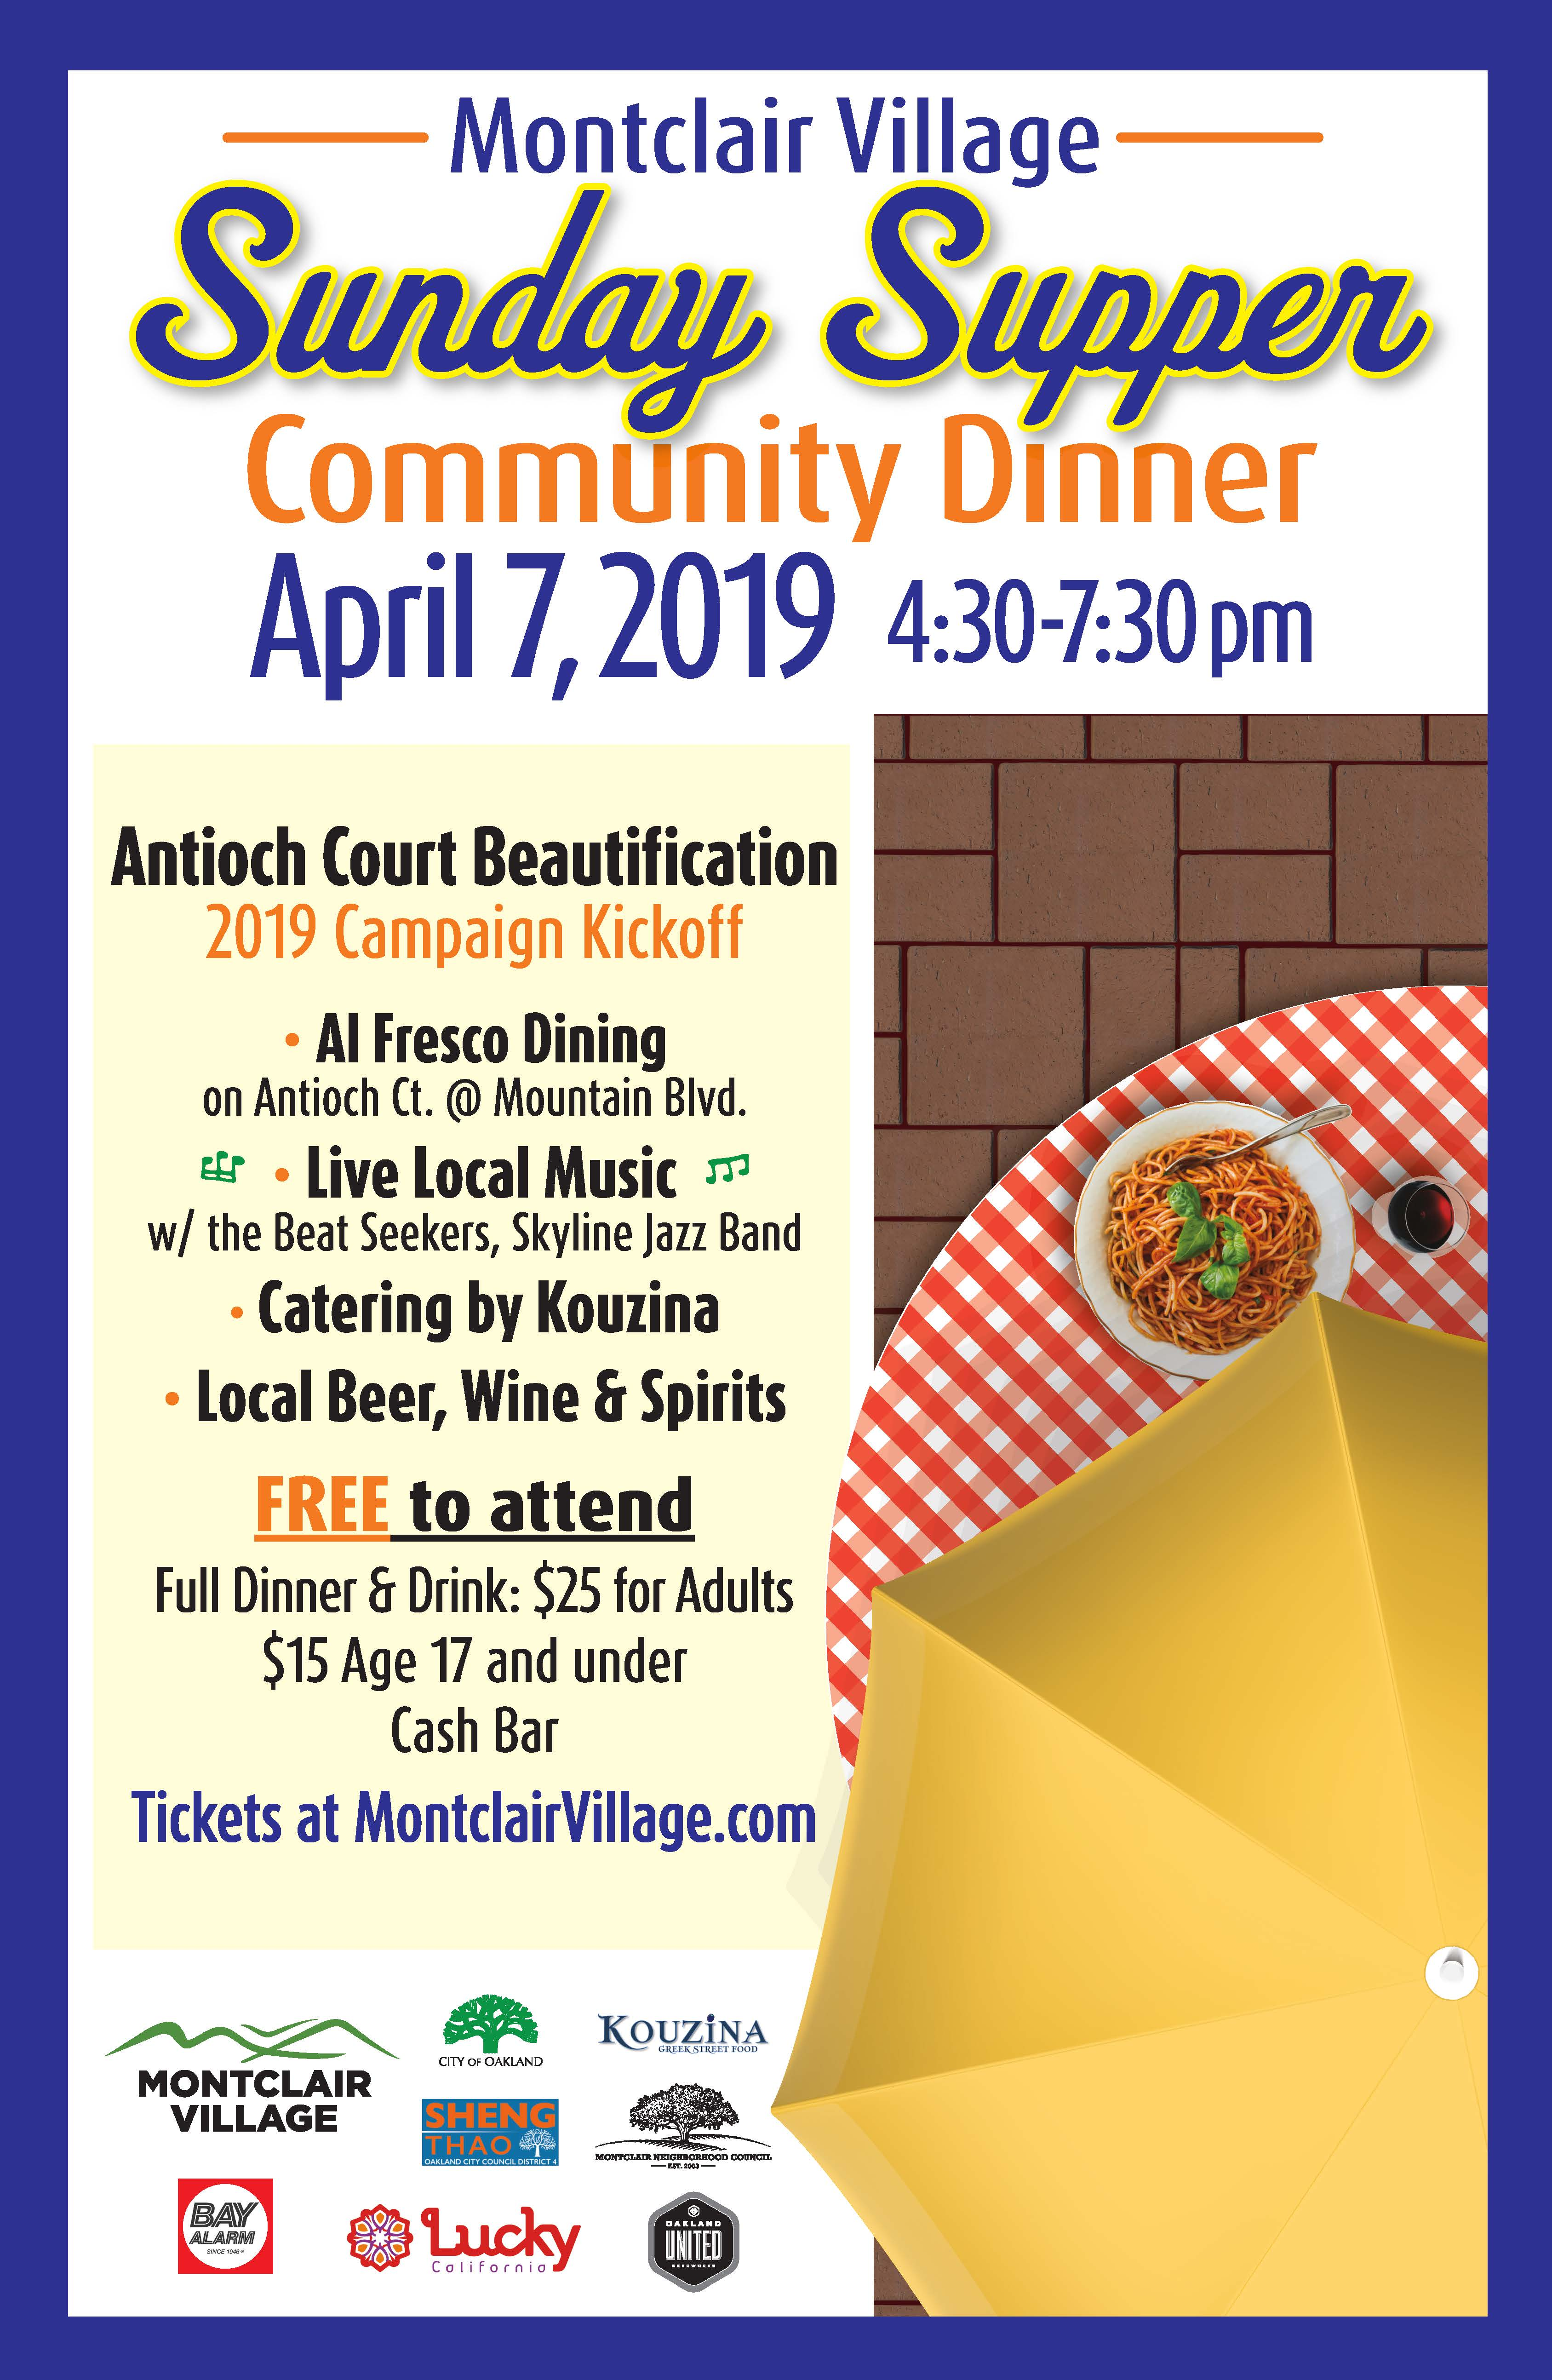 Join us for a community dinner on April 7